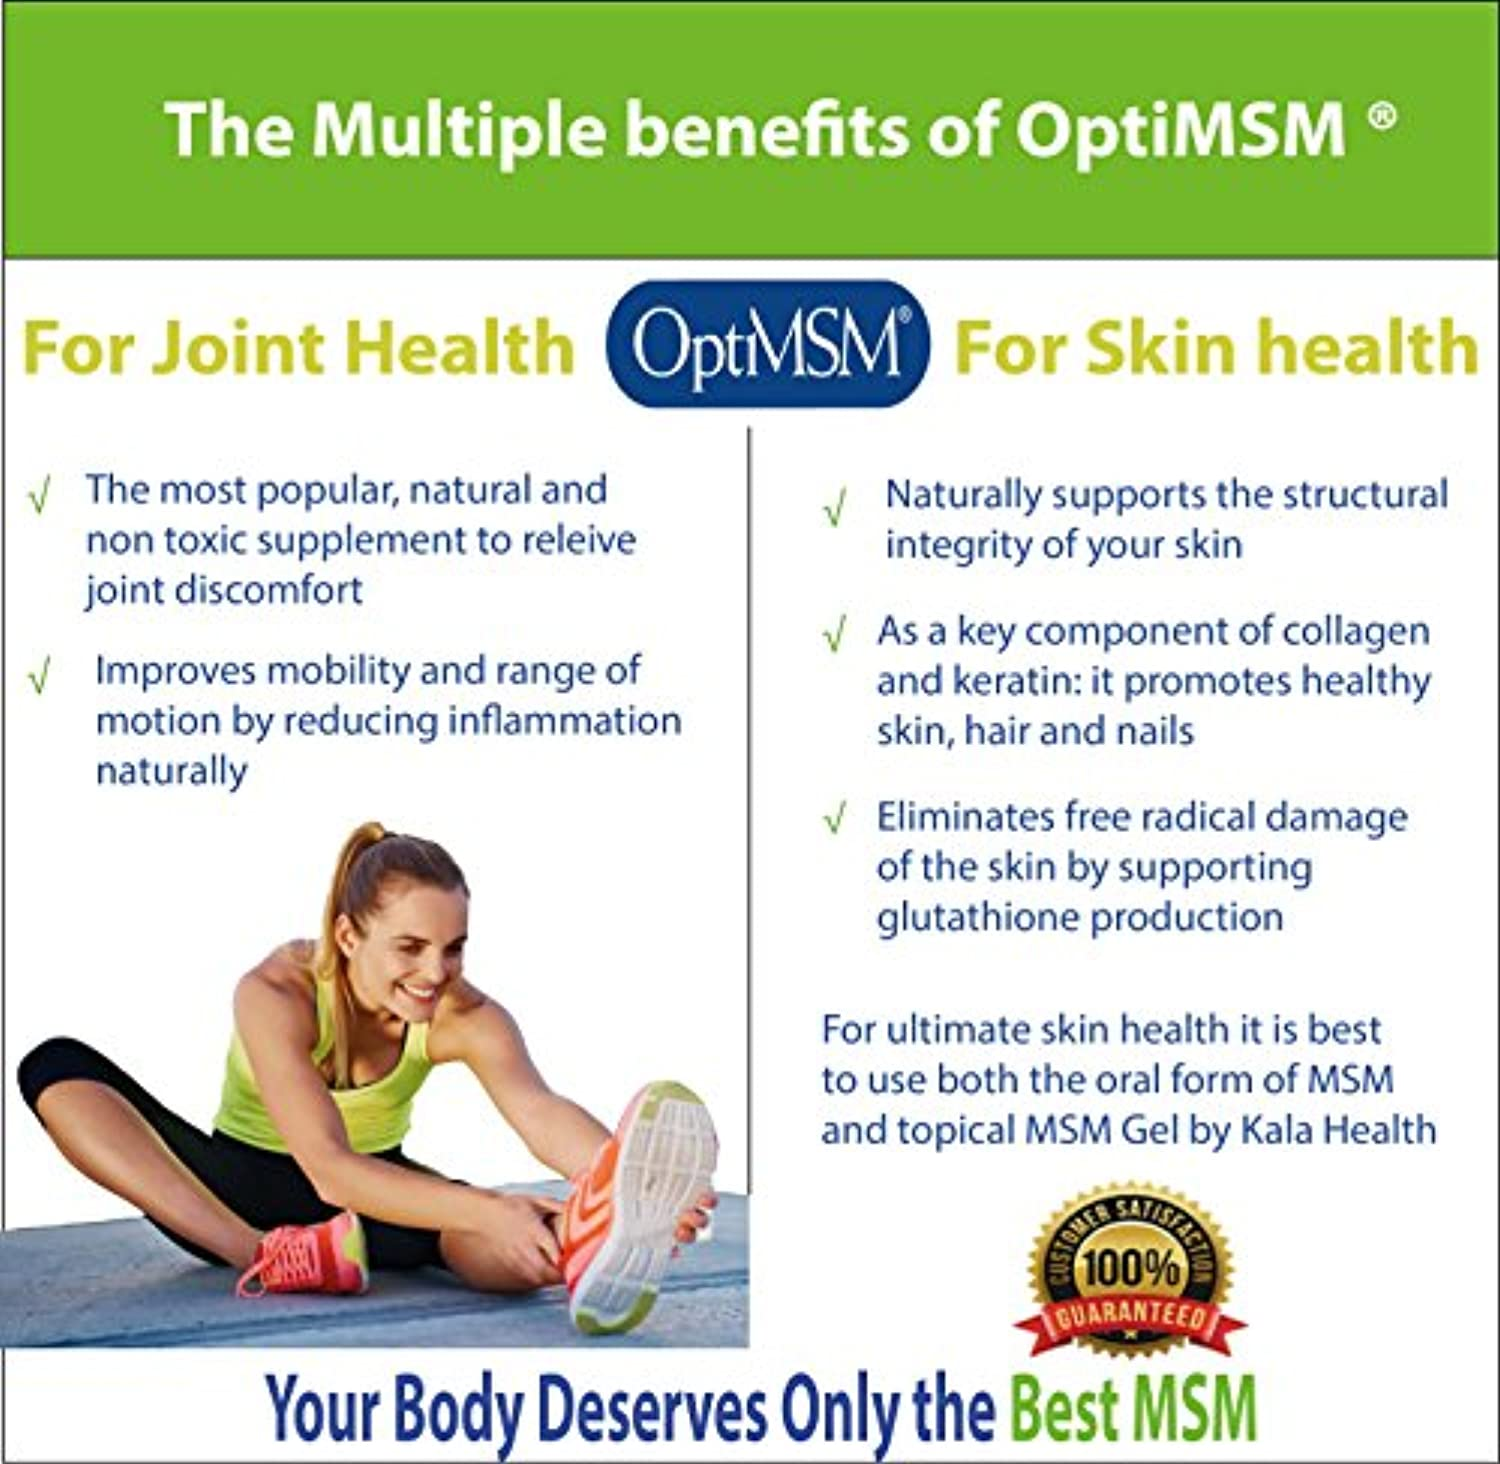 Kala Health - OptiMSM Powder Coarse Flakes (500 g Container)  This Pure MSM  Supplement is the ONLY Methylsulfonylmethane Made in the USA - The Organic